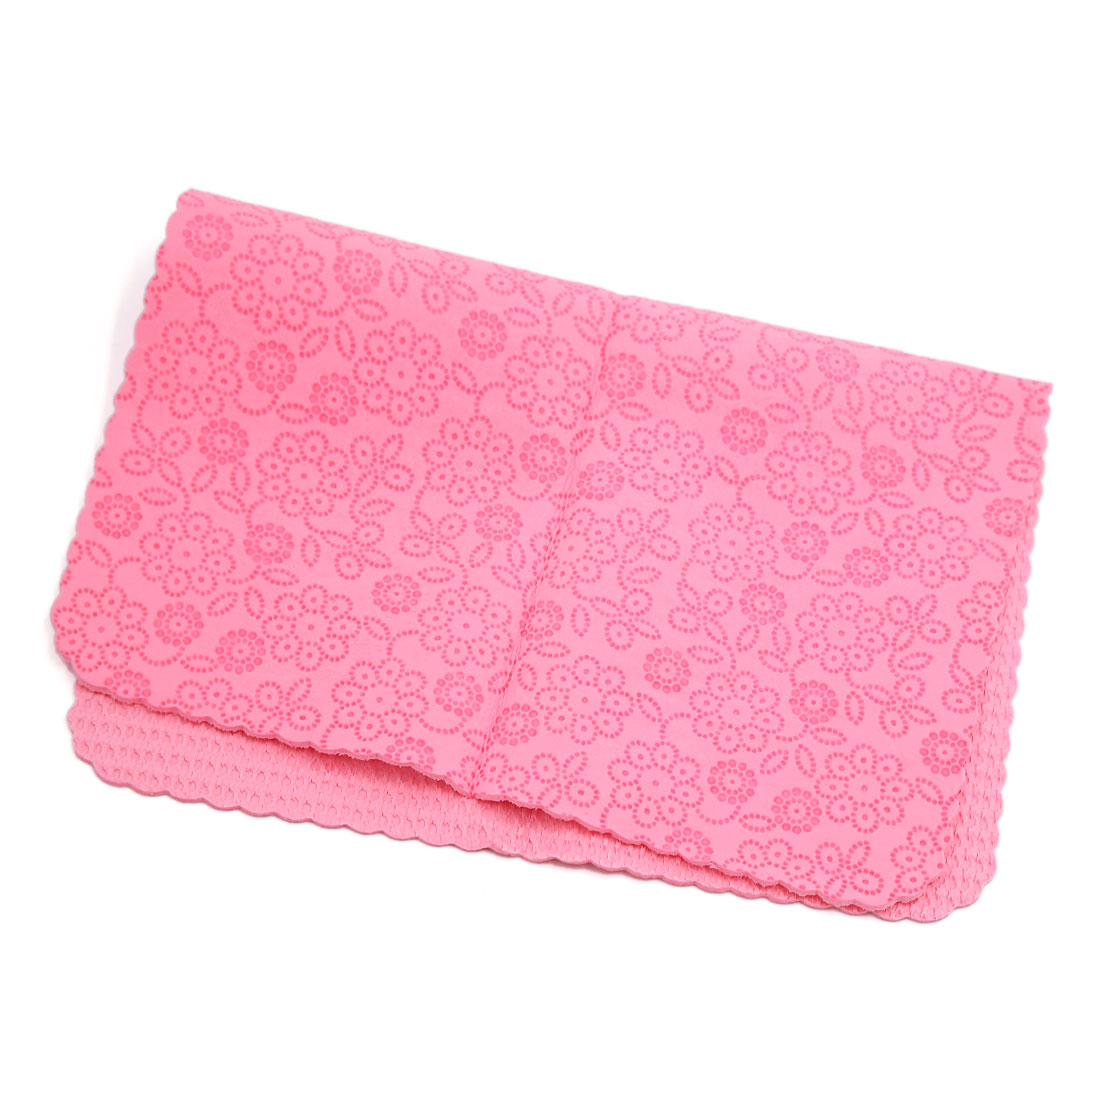 43 x 32.1cm Pink Faux Chamois Leather Carved Cleaning Cloth Hair Drying Towel